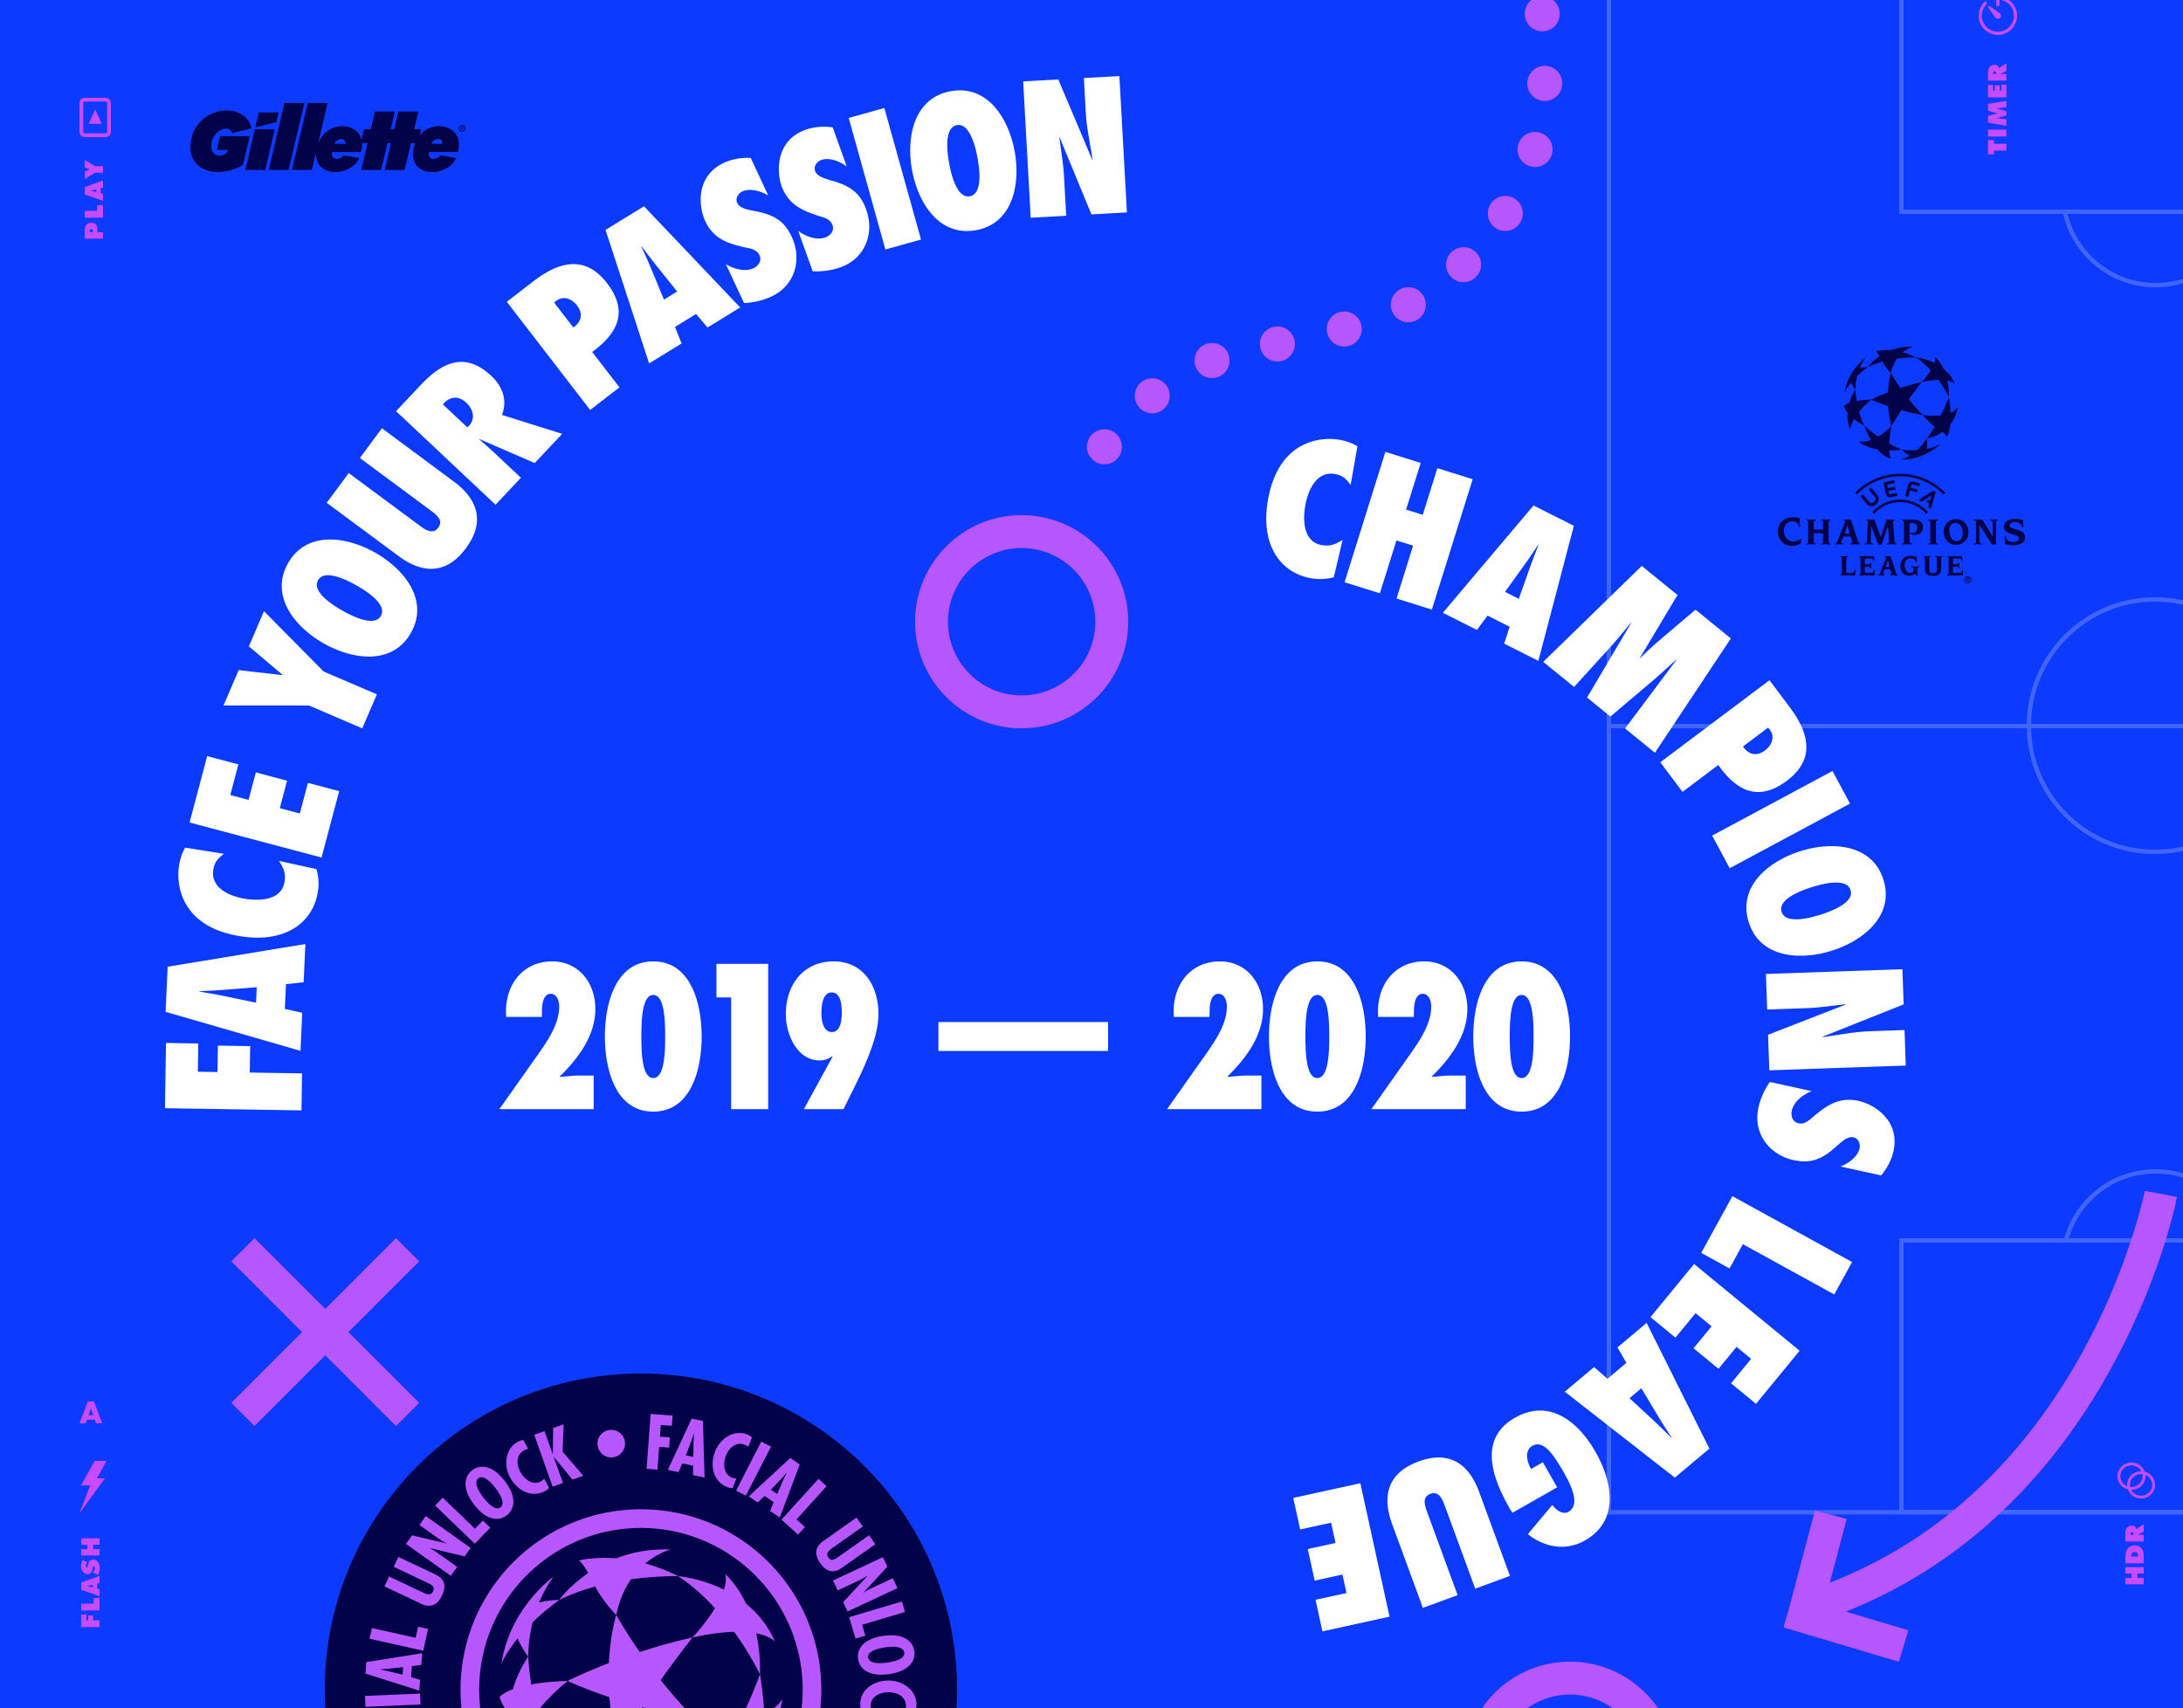 Women Champions League Projects Photos Videos Logos Illustrations And Branding On Behance